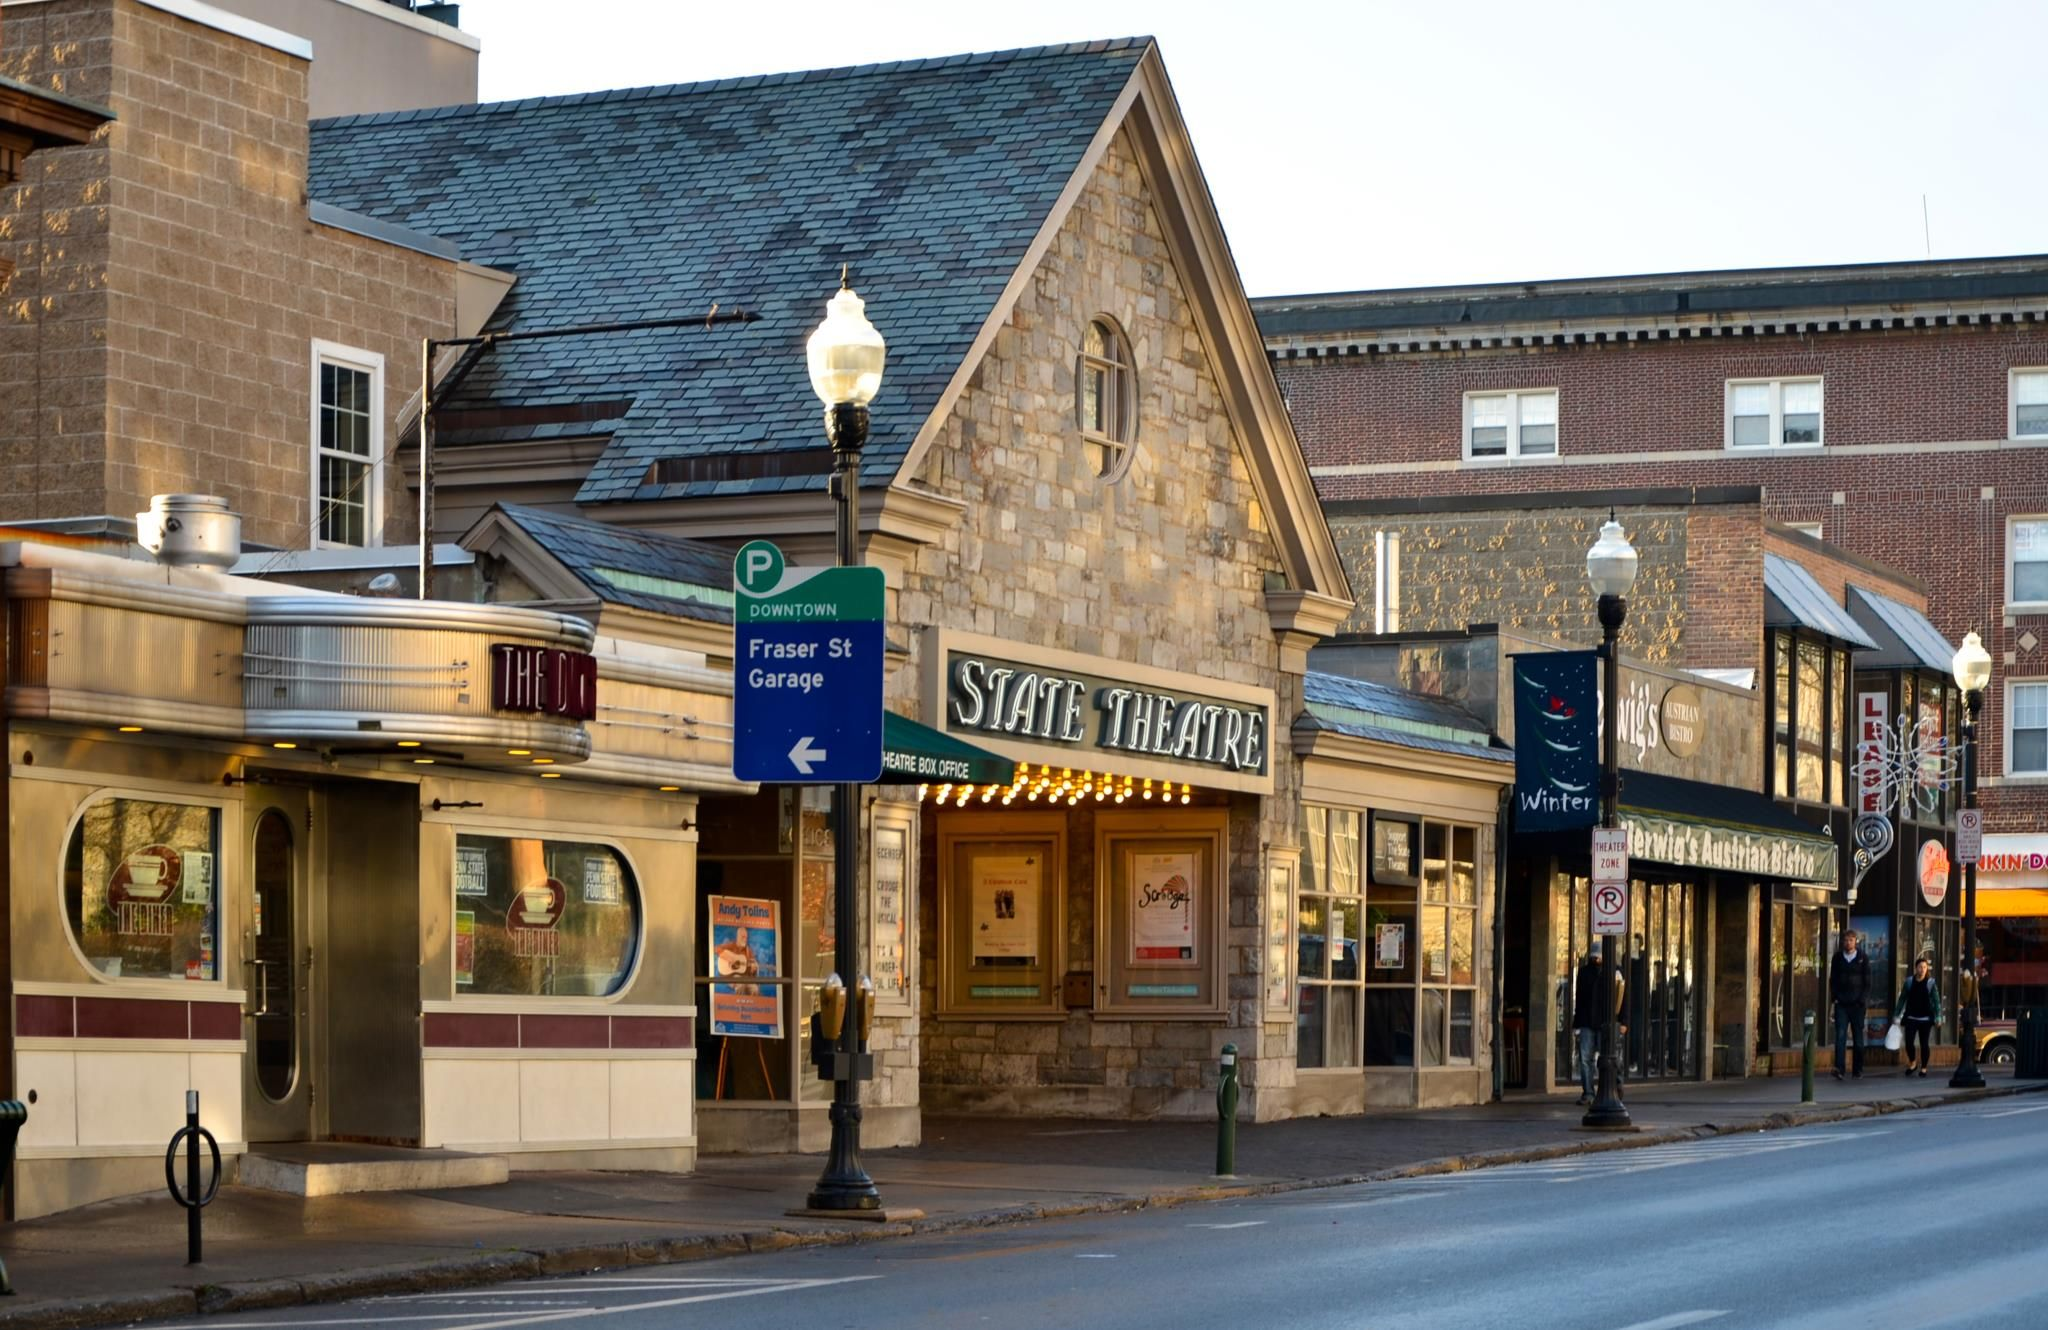 Menu For Olive Garden: The State Theater In Downtown State College, PA